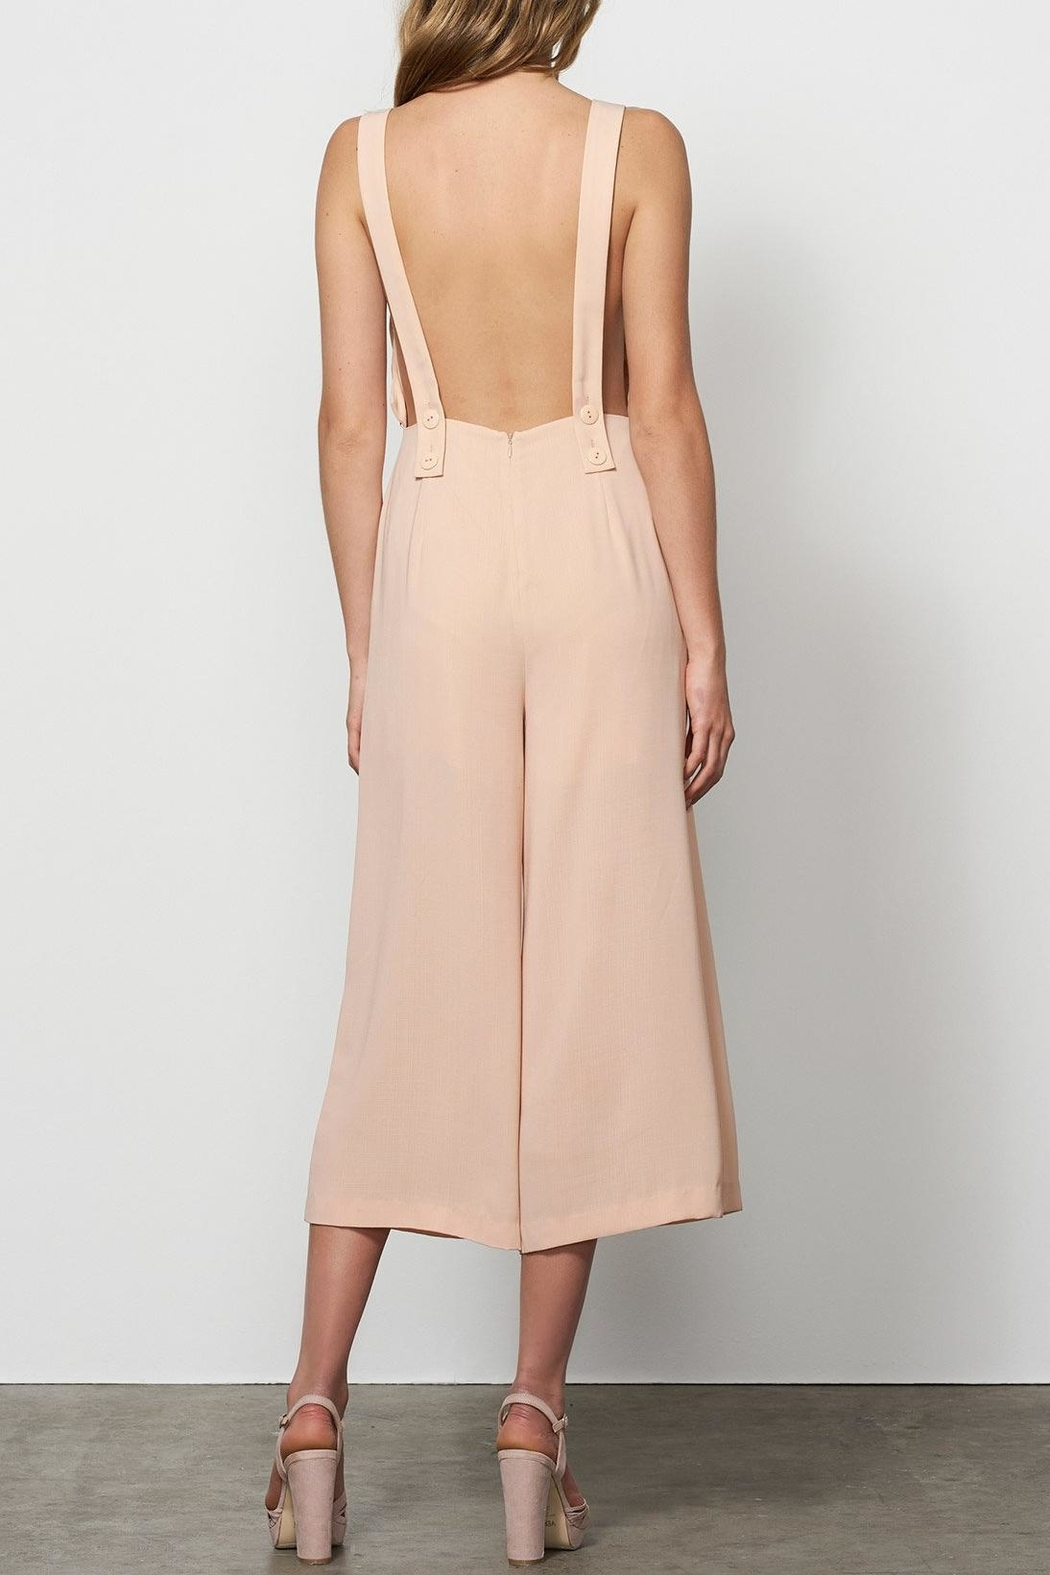 Stevie May Wide Leg Overalls - Side Cropped Image